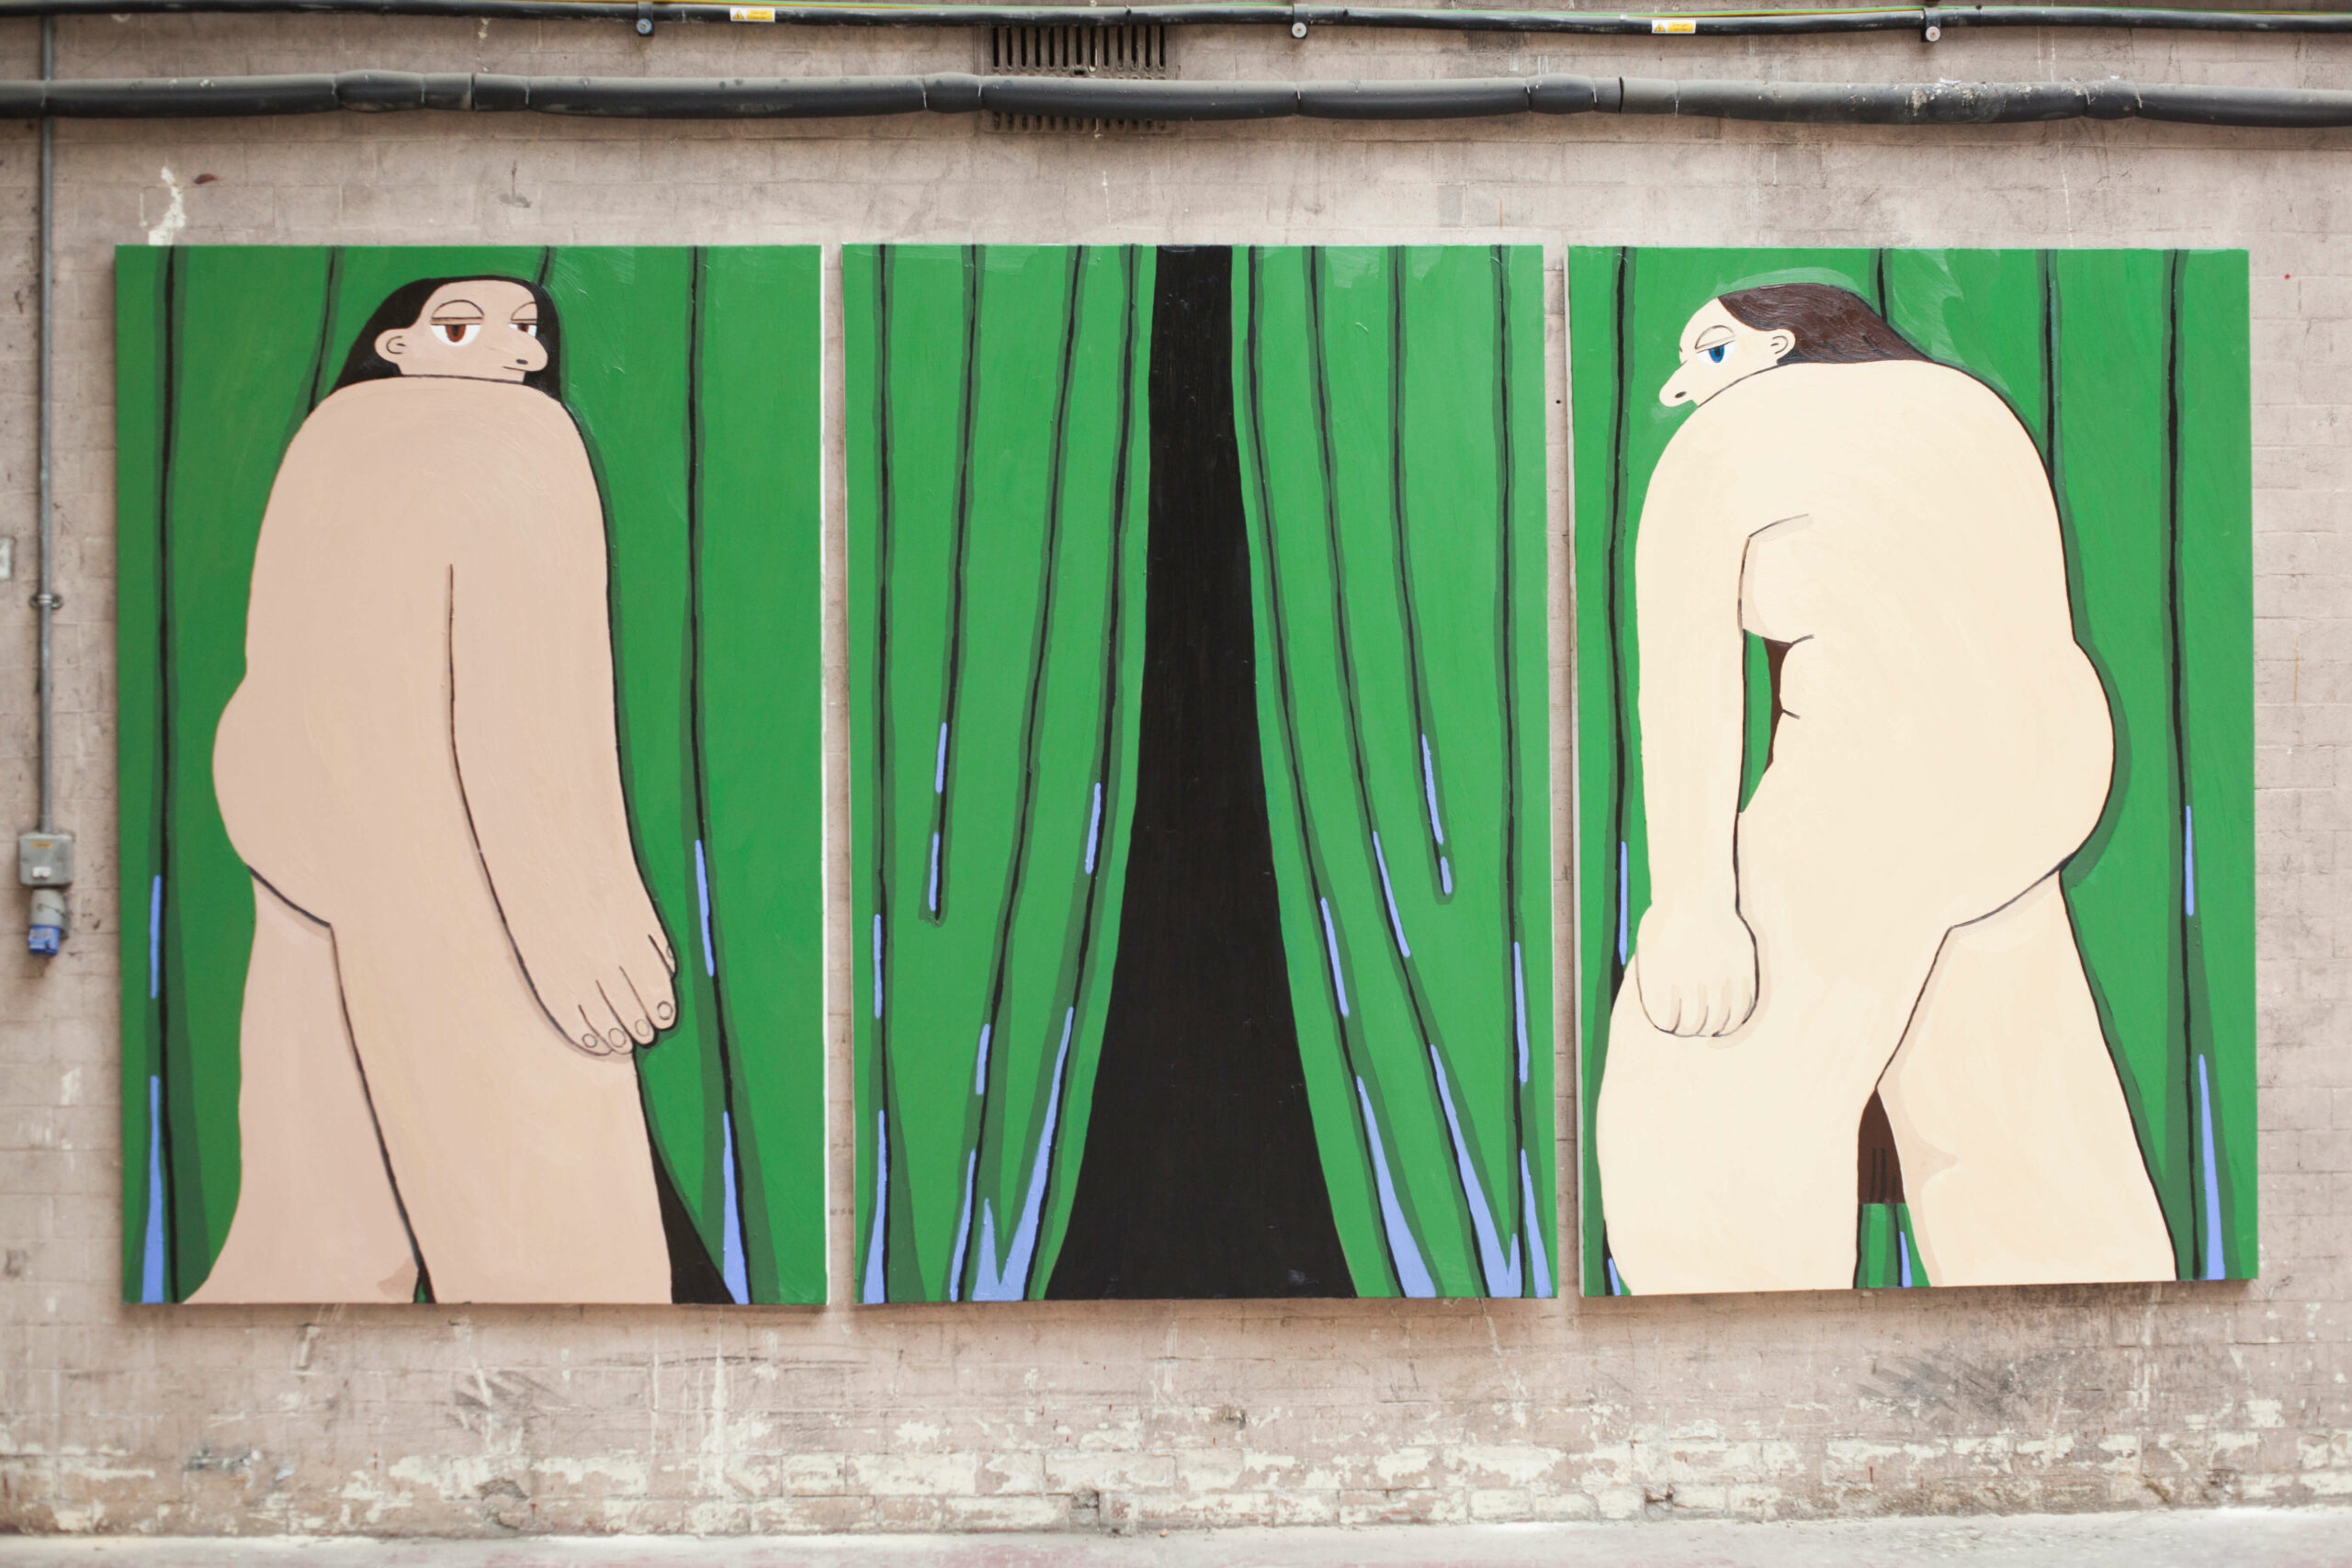 Hanna Wilson. Green Curtain. Exhibited at Five Hides, Curated by Thorp Stavri